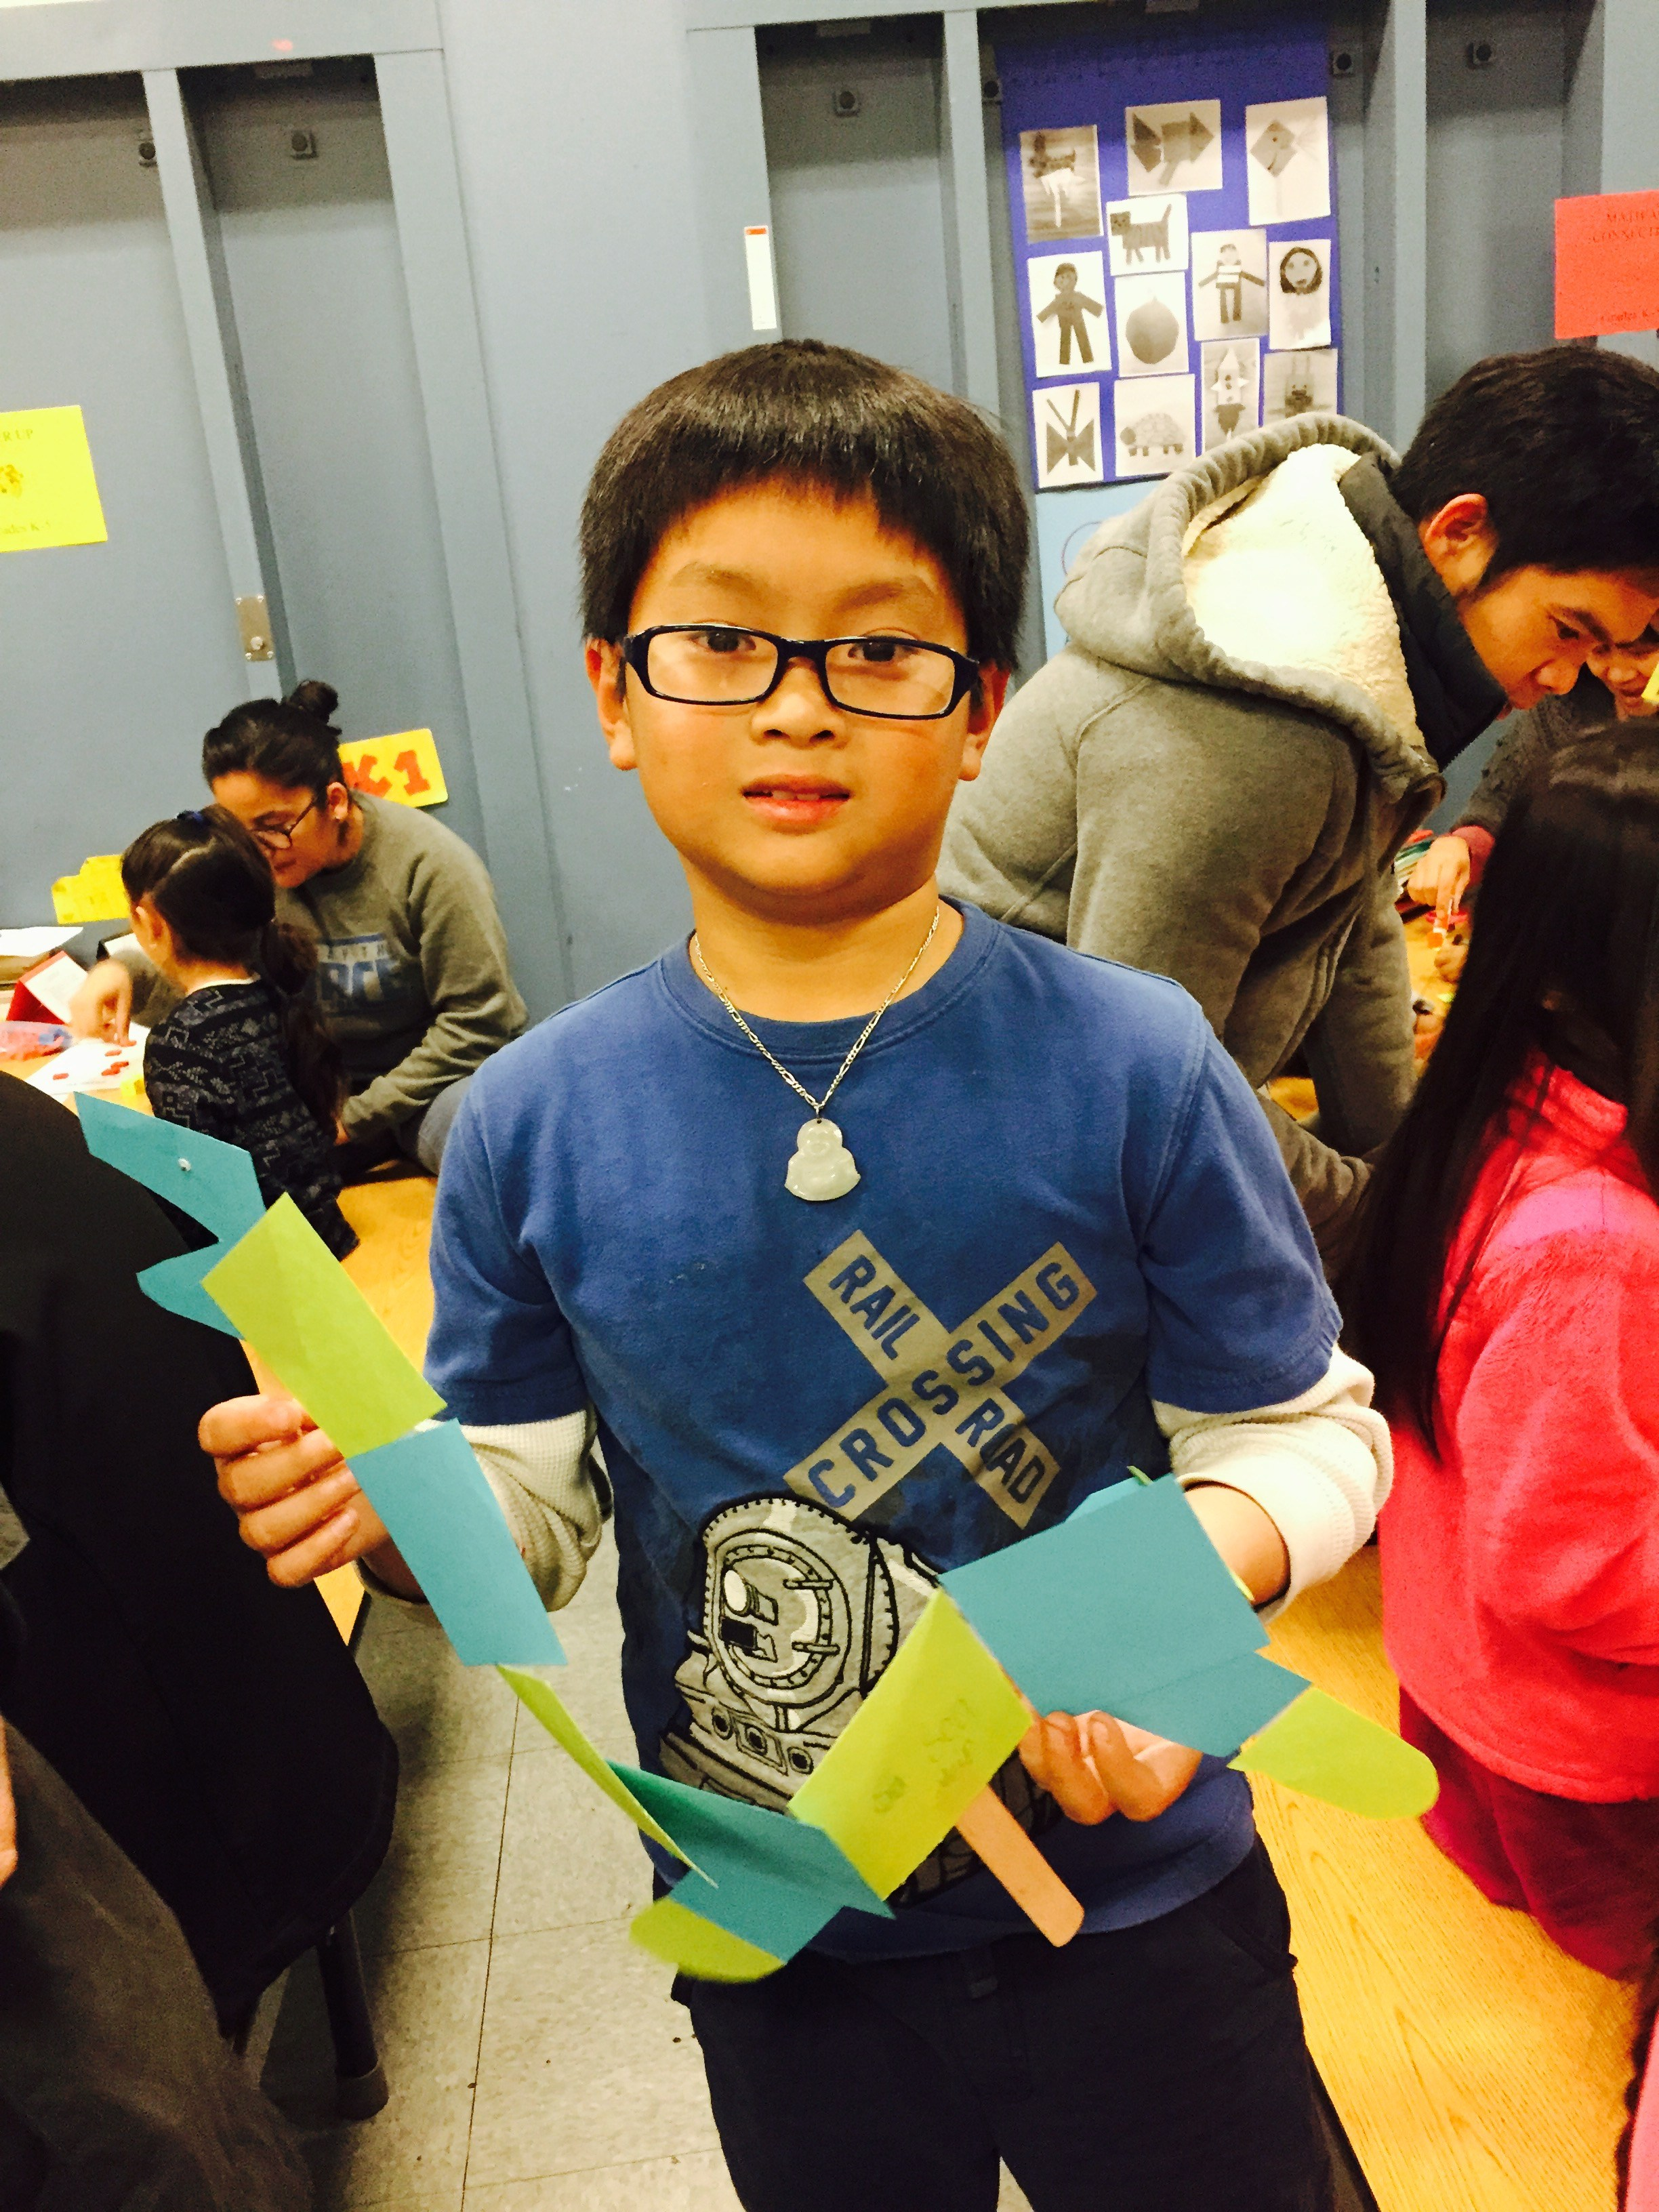 Creating geometric shapes of art during Family math night.